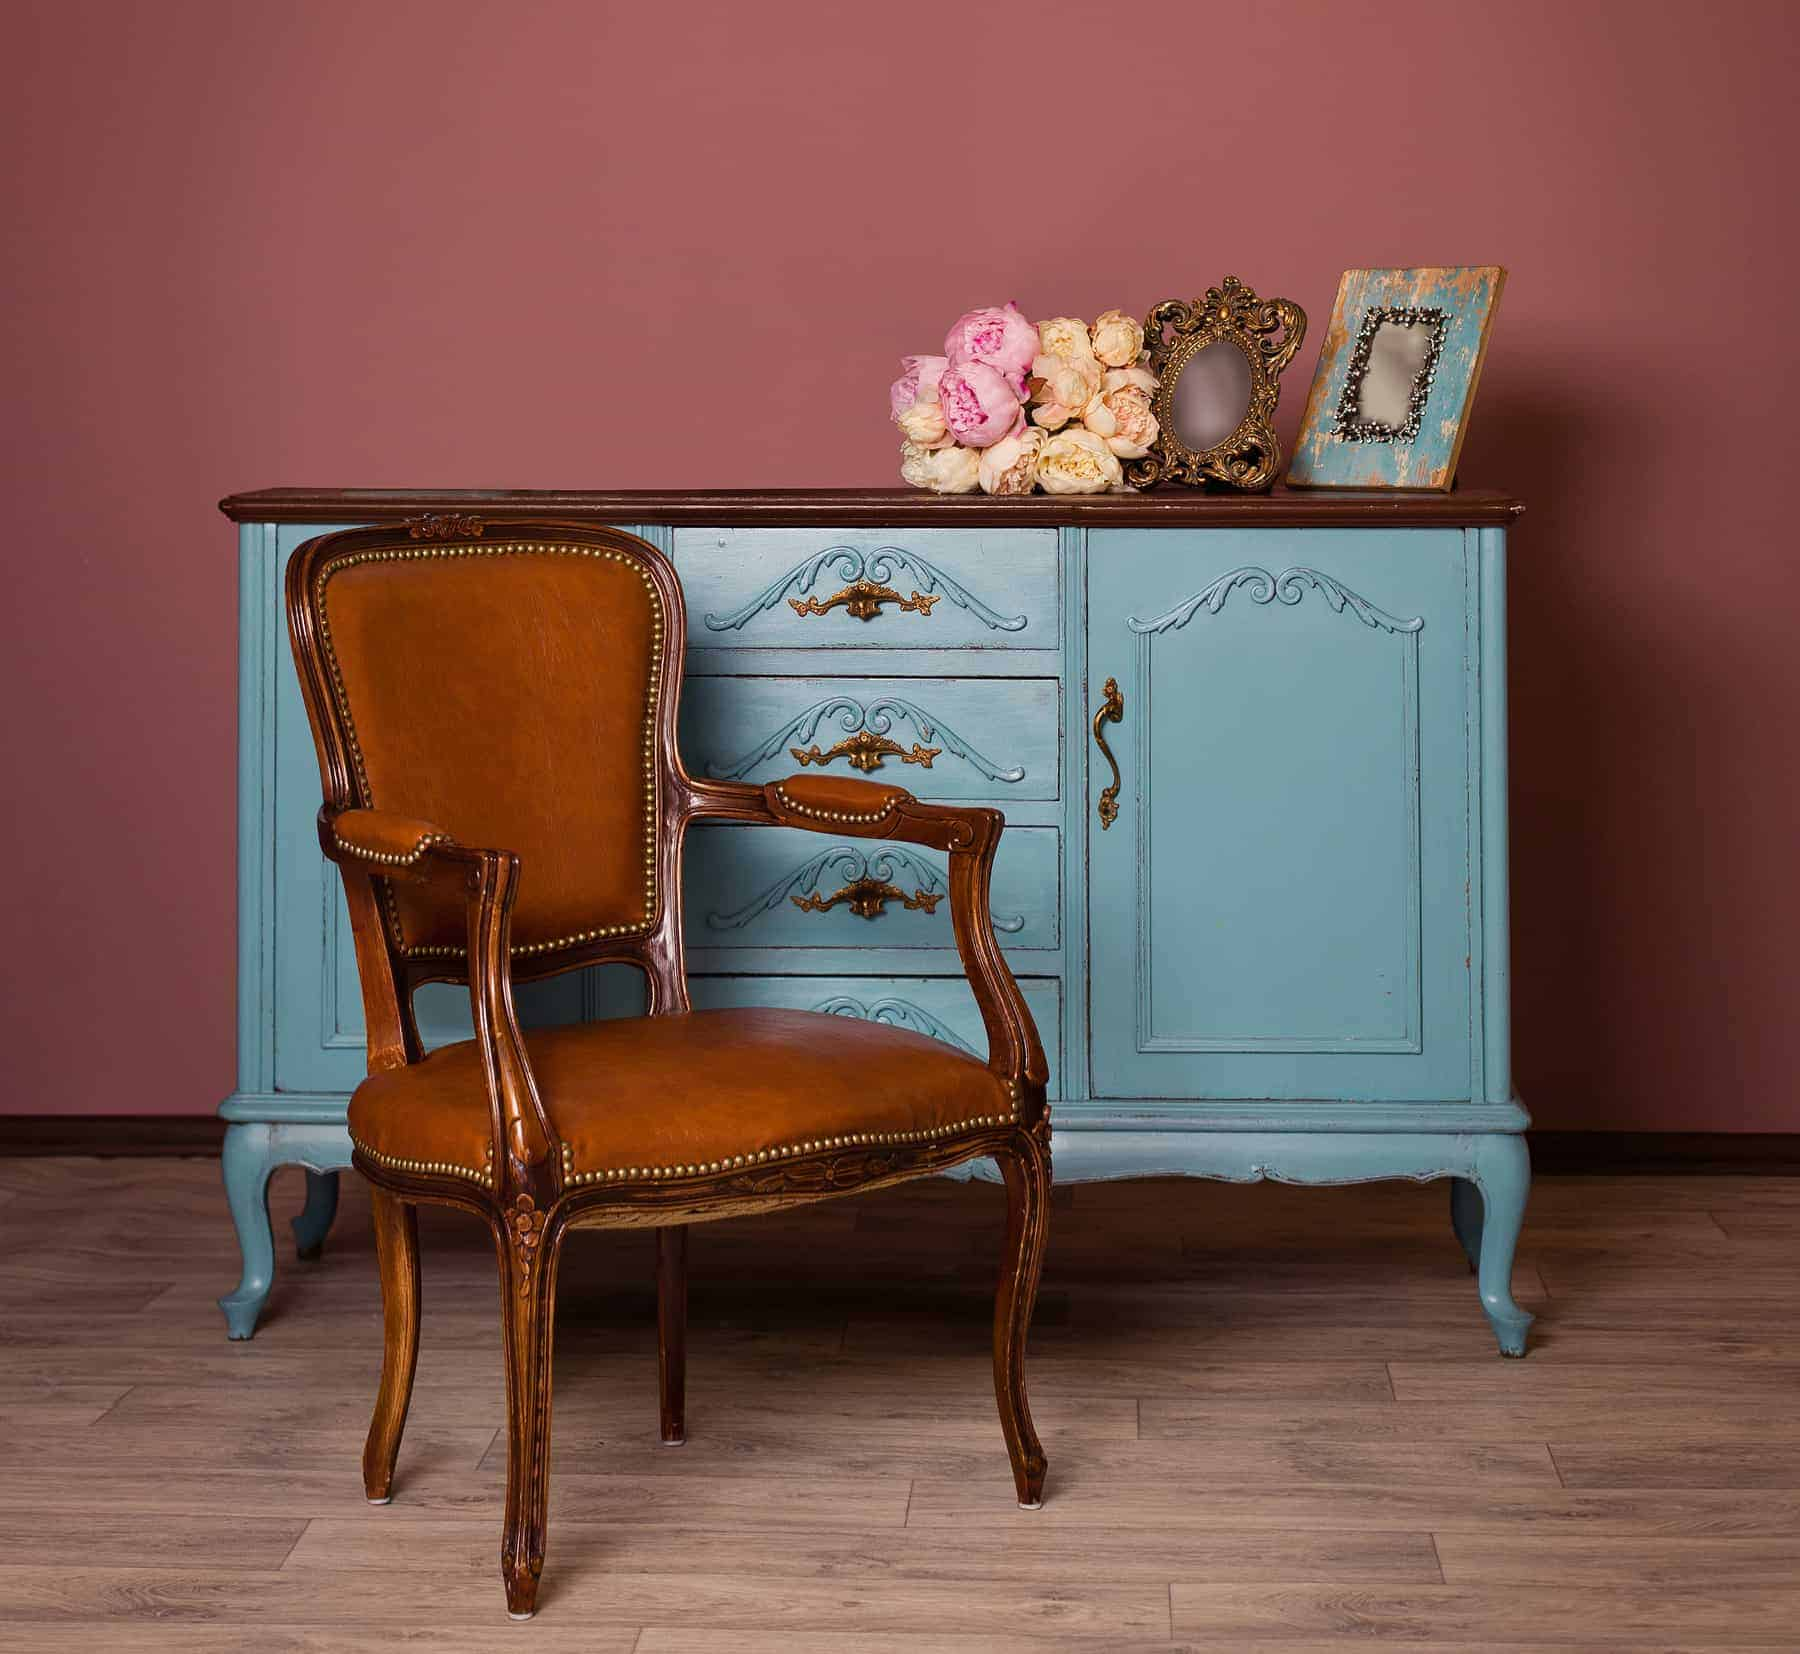 Where To Find Nice, Cheap Furniture In San Diego